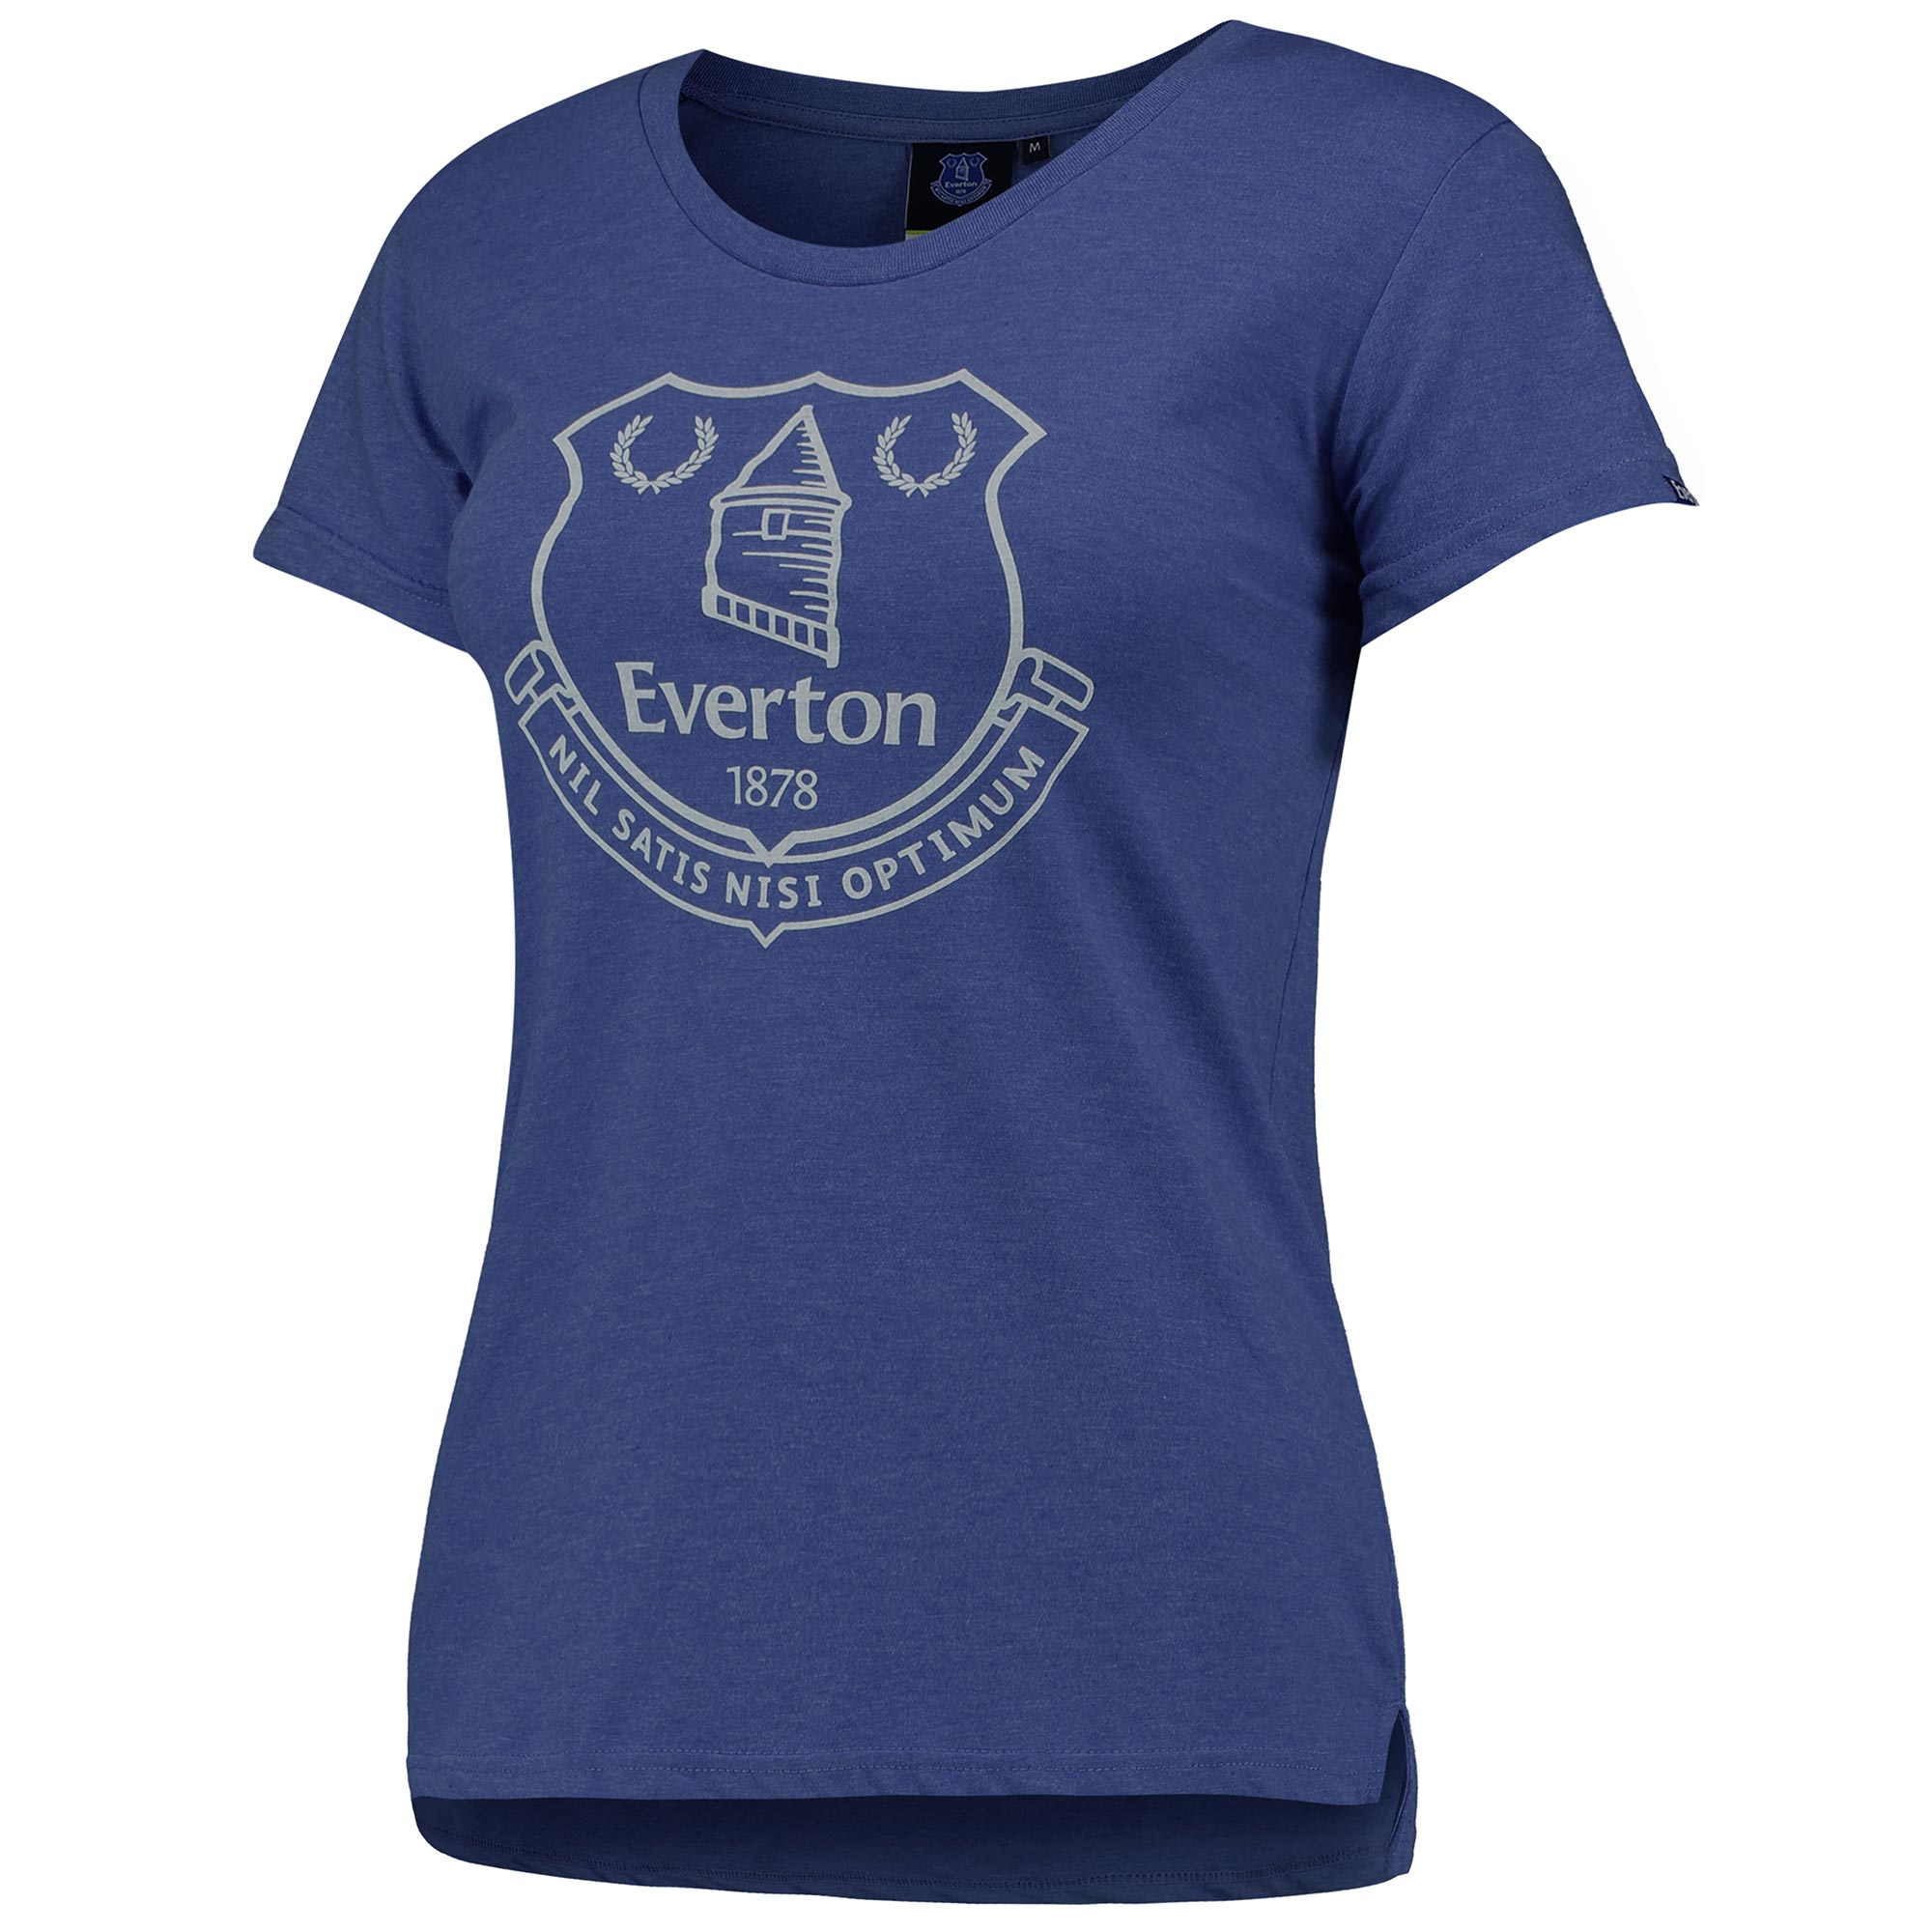 Everton Printed Crest T-Shirt - Royal - Womens